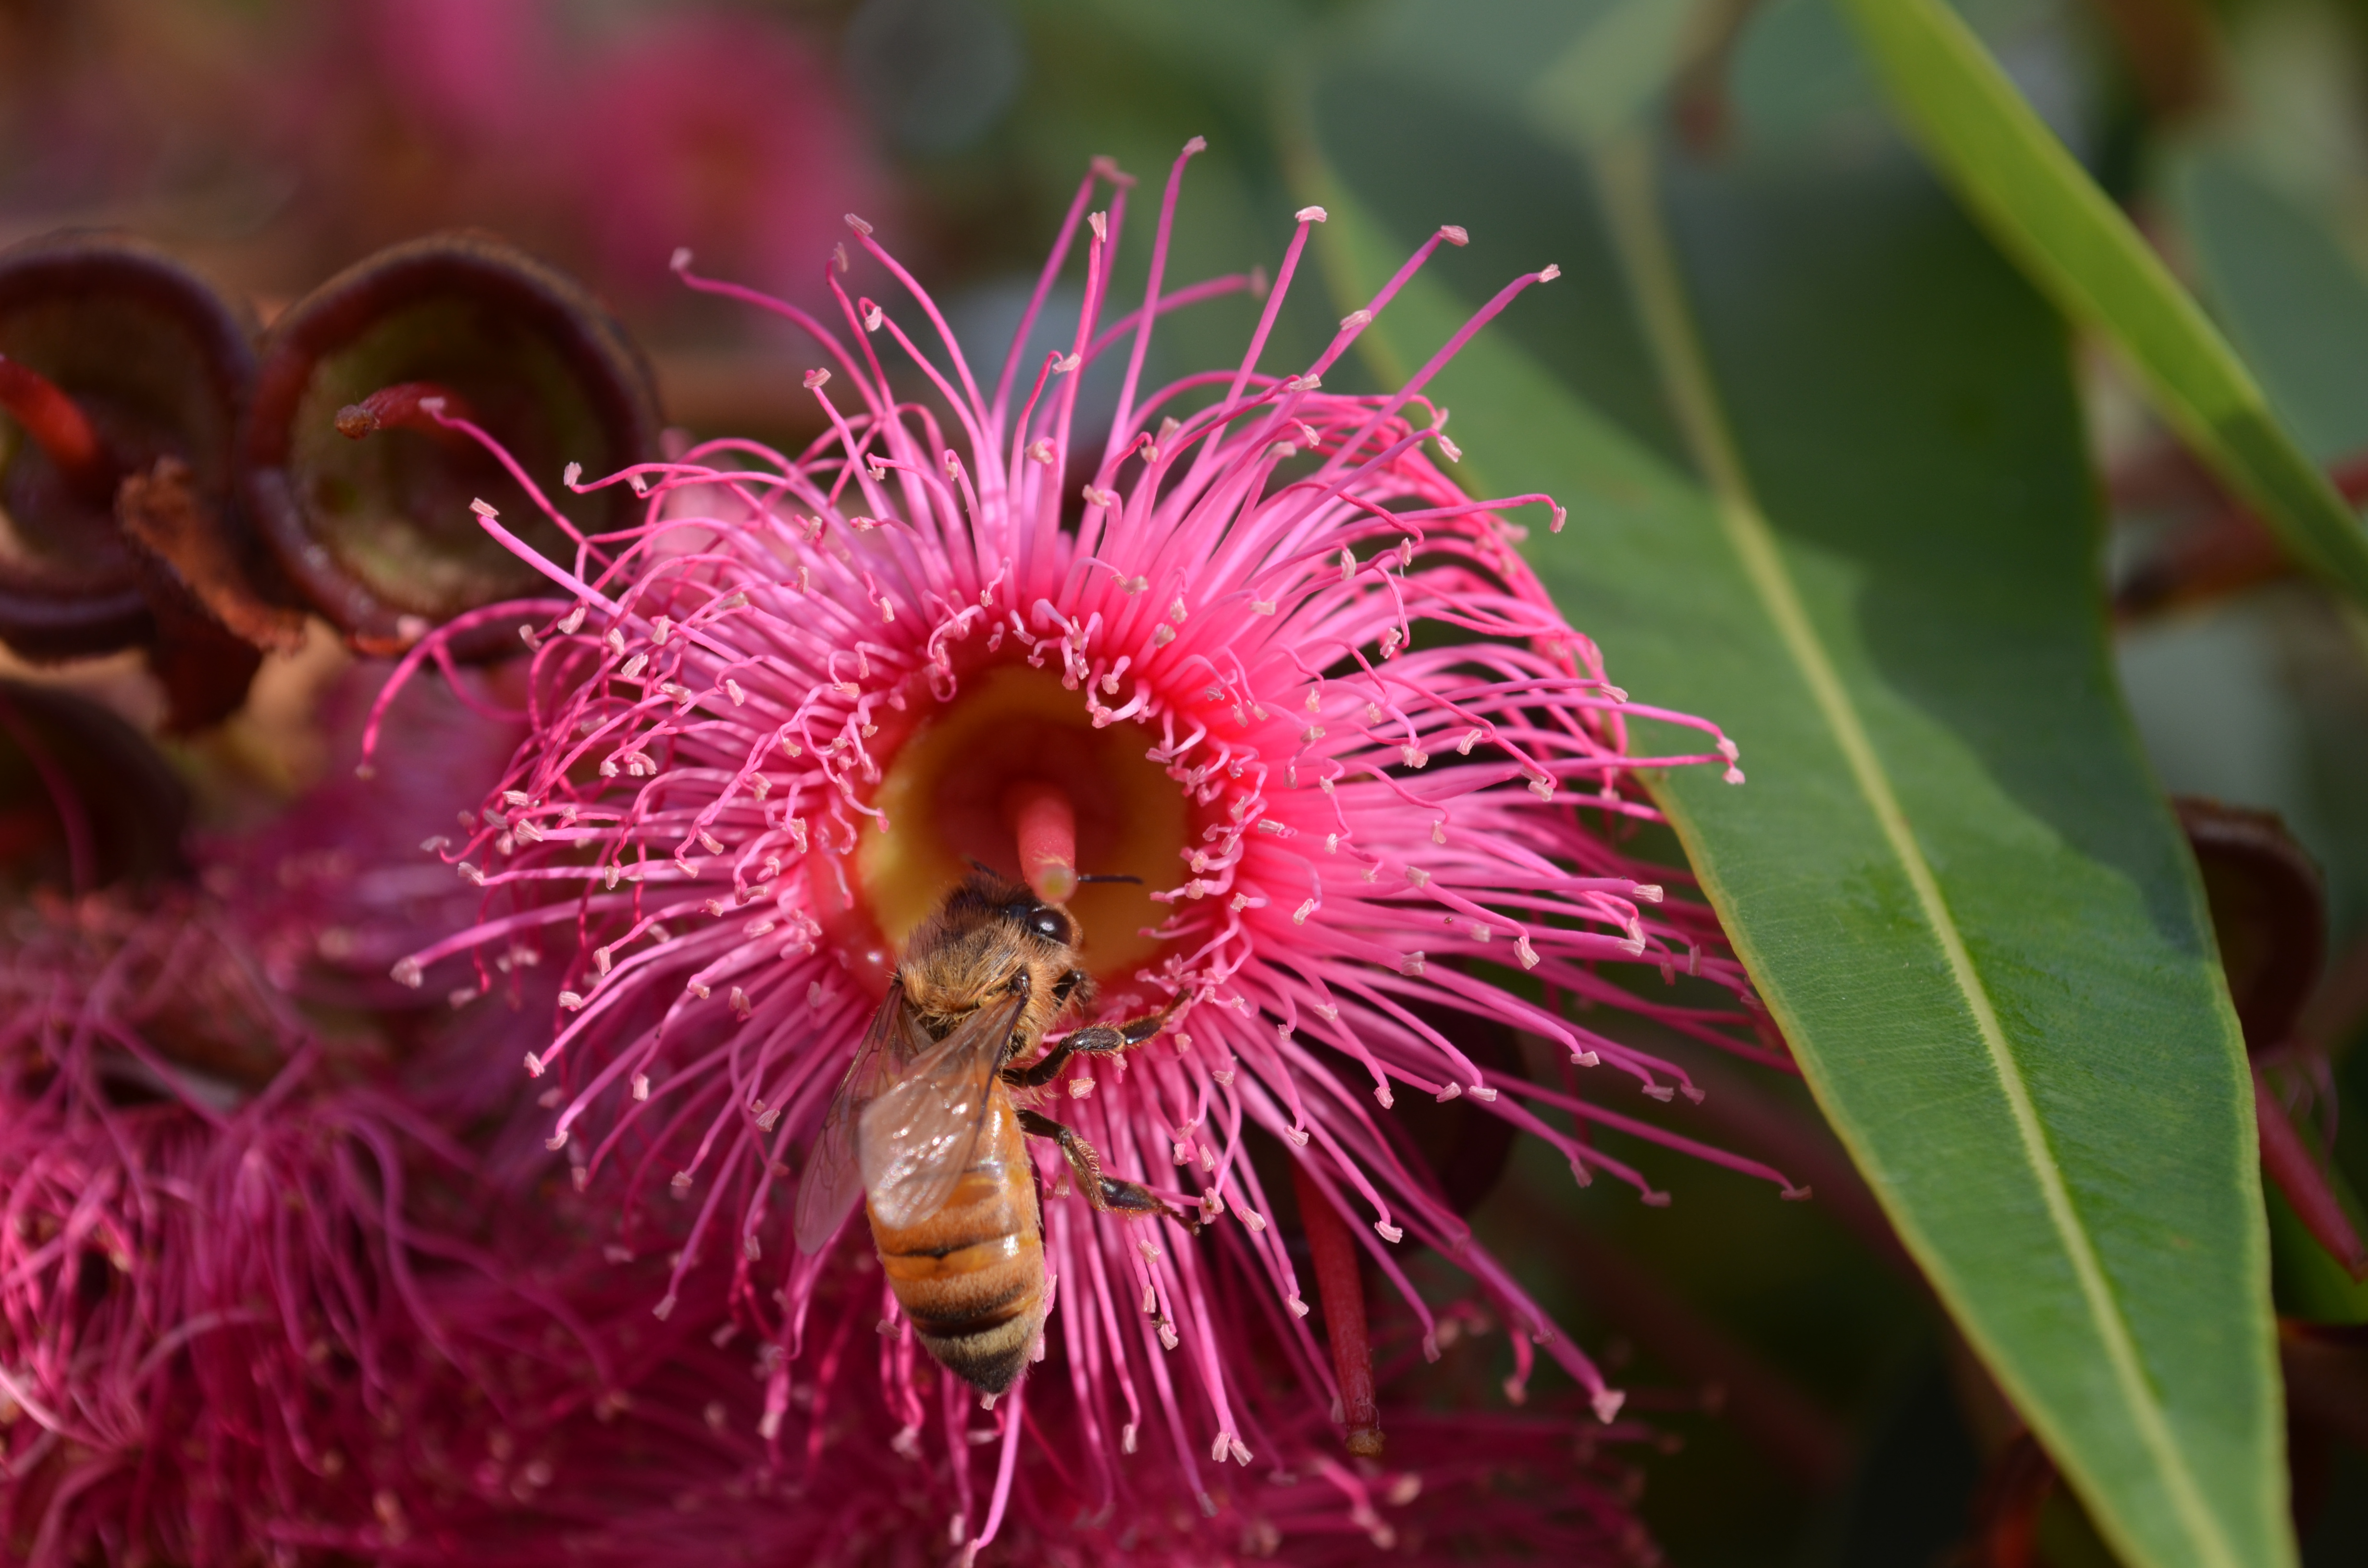 Flowering gum avian avenue parrot forum this pink flowering gum is in a park downtown in my city mightylinksfo